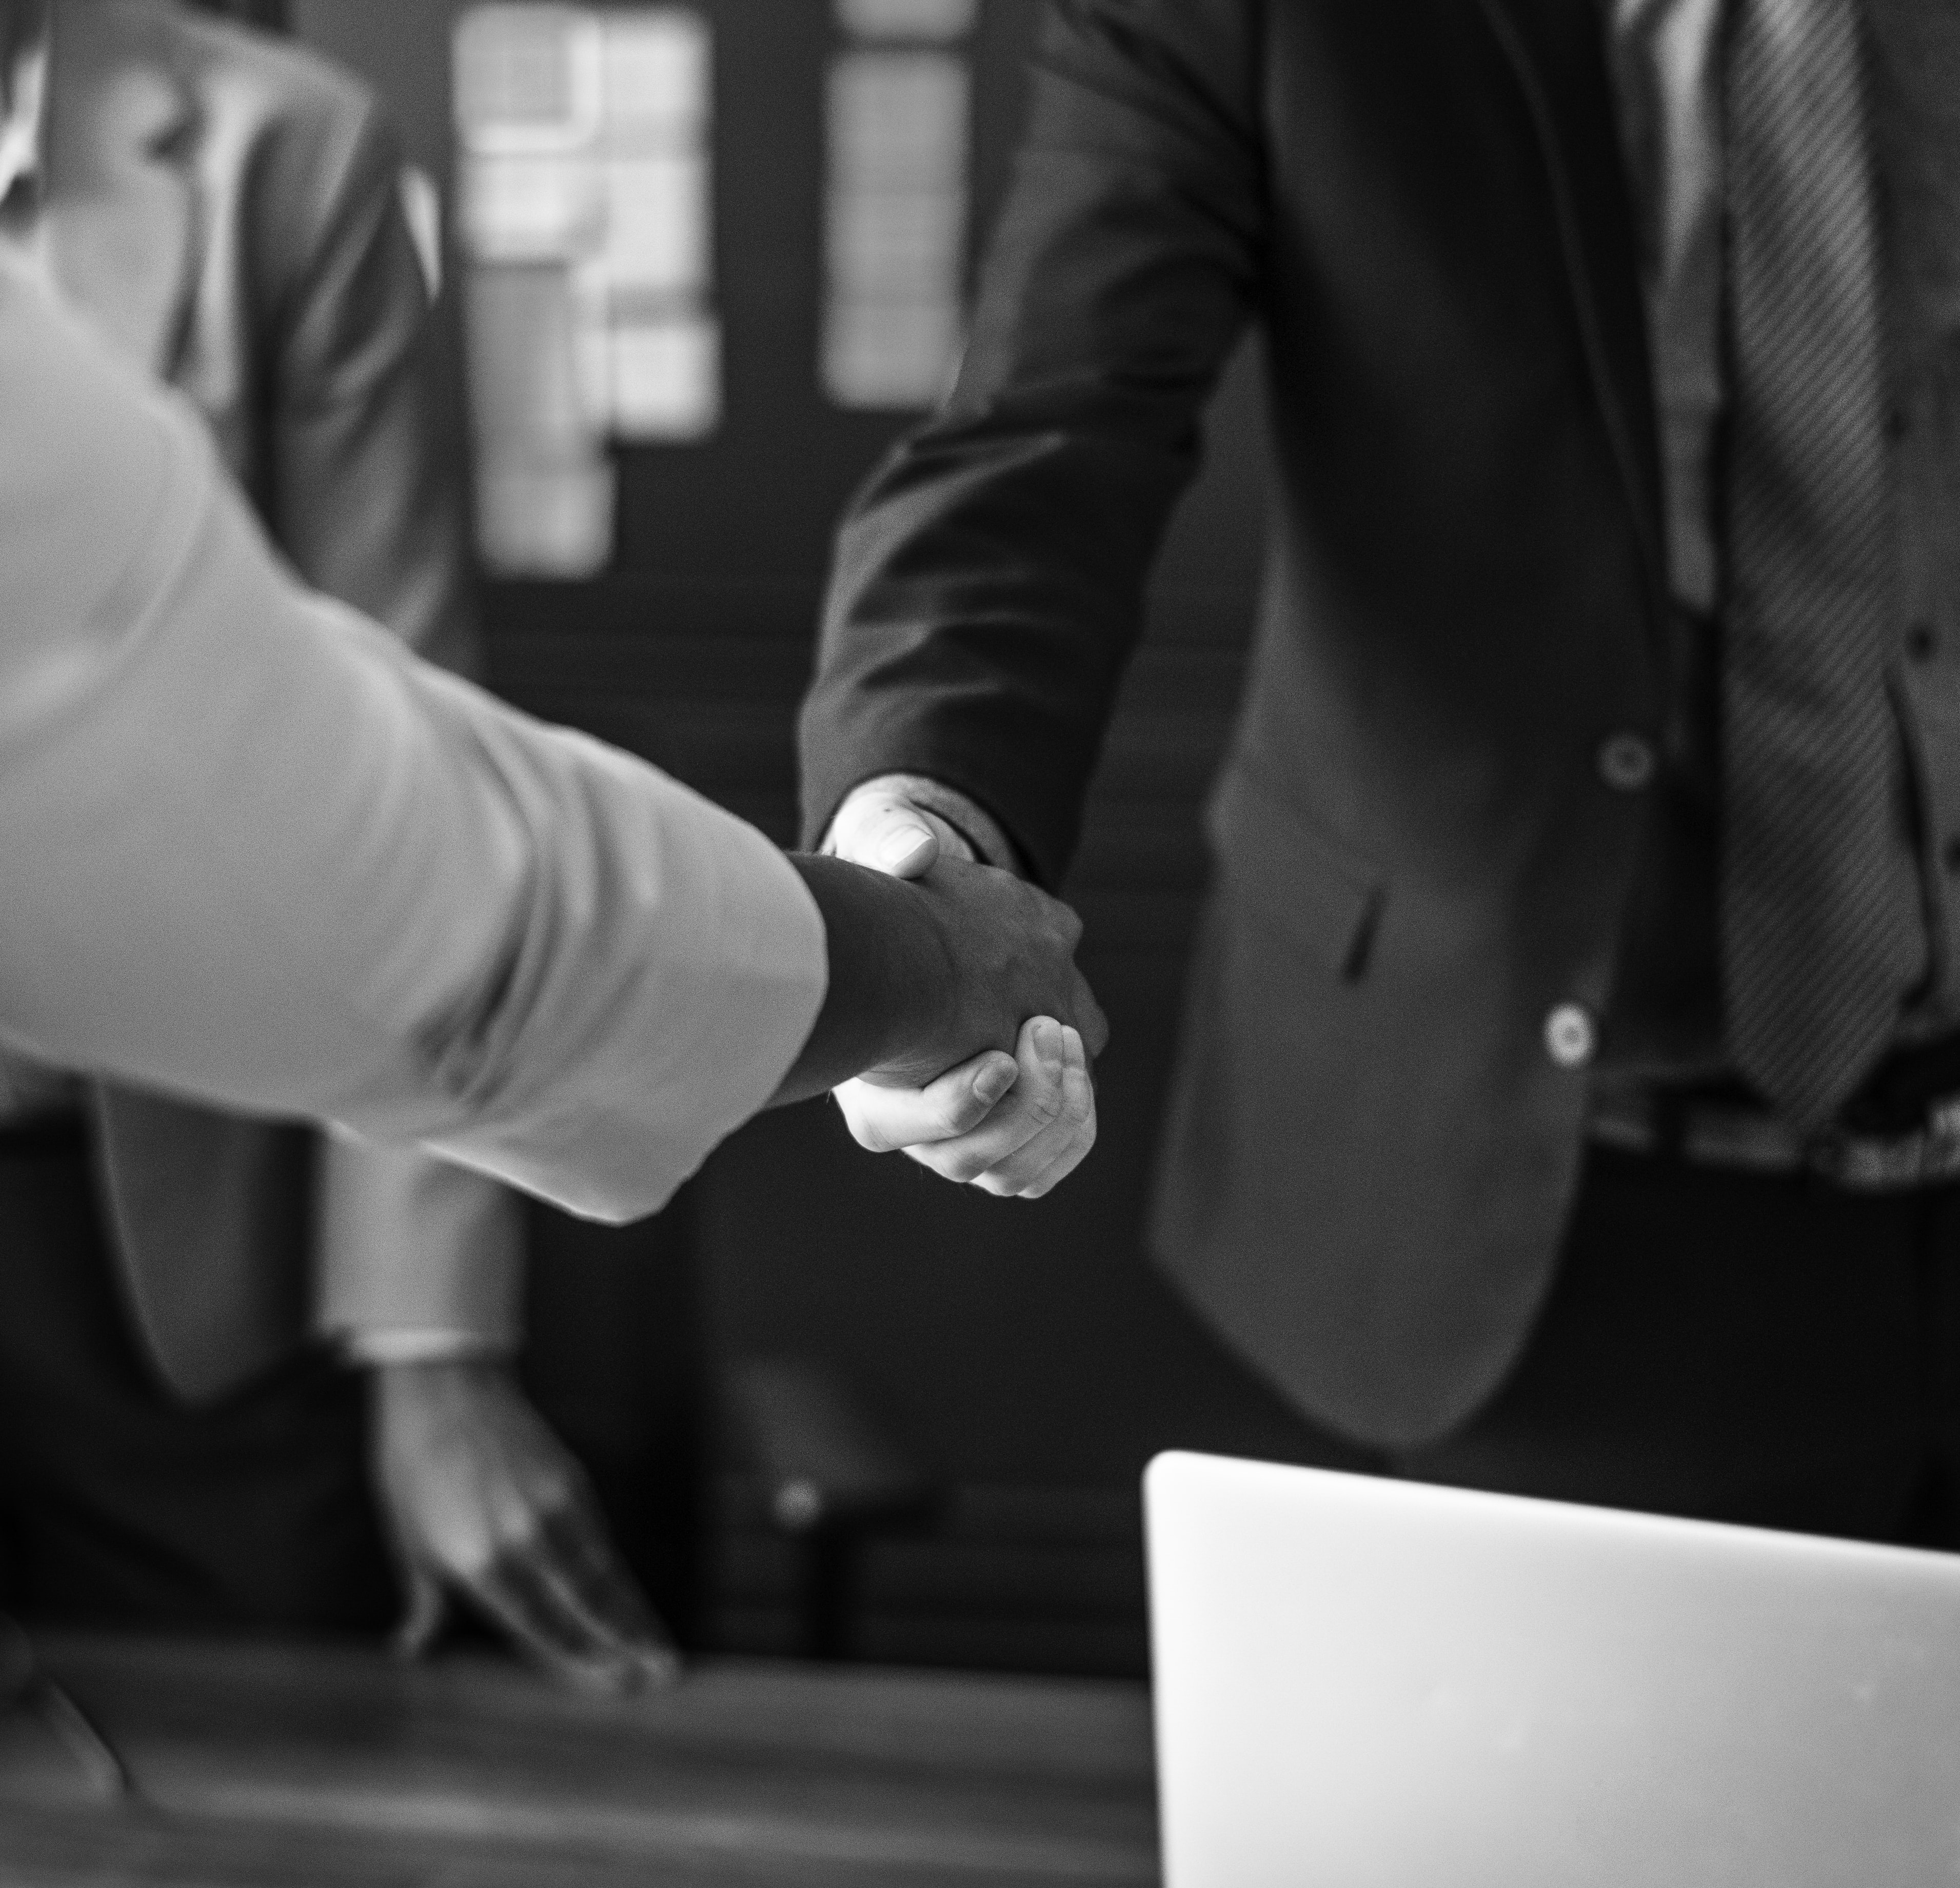 two person shaking hands in grayscale photo